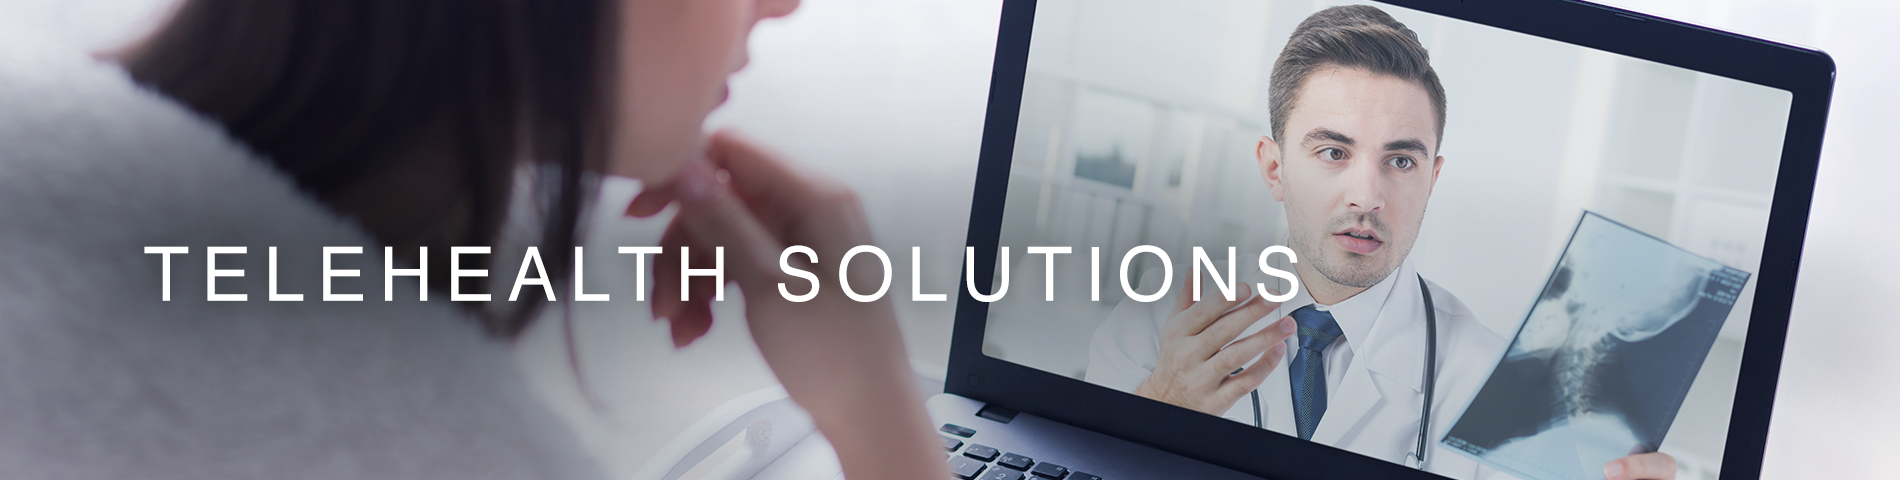 Telehealth Solutions